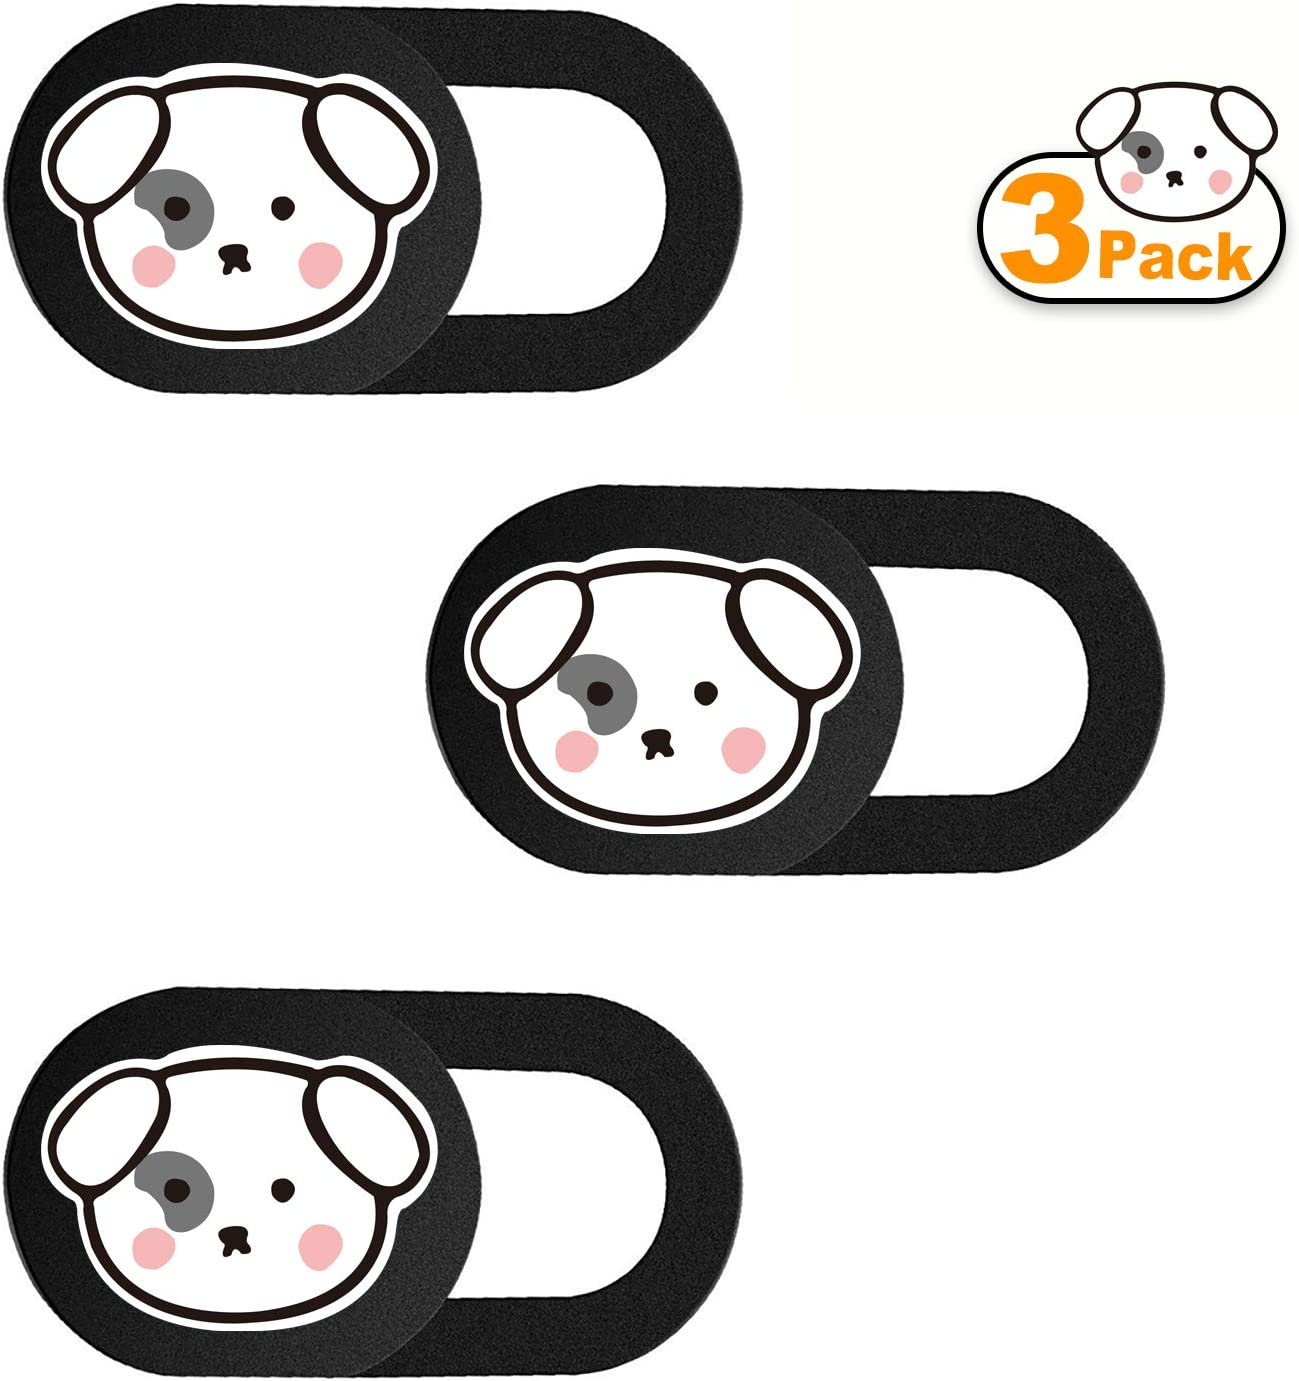 SIREG Webcam Cover Slide Ultra Thin - Cute Animal Web Camera Cover fits Laptop,Tablet,MacBook Pro,Mac Mini, Computer, Smartphone,Protect Your Privacy and Security,Strong Adhesive (Back-Dog)